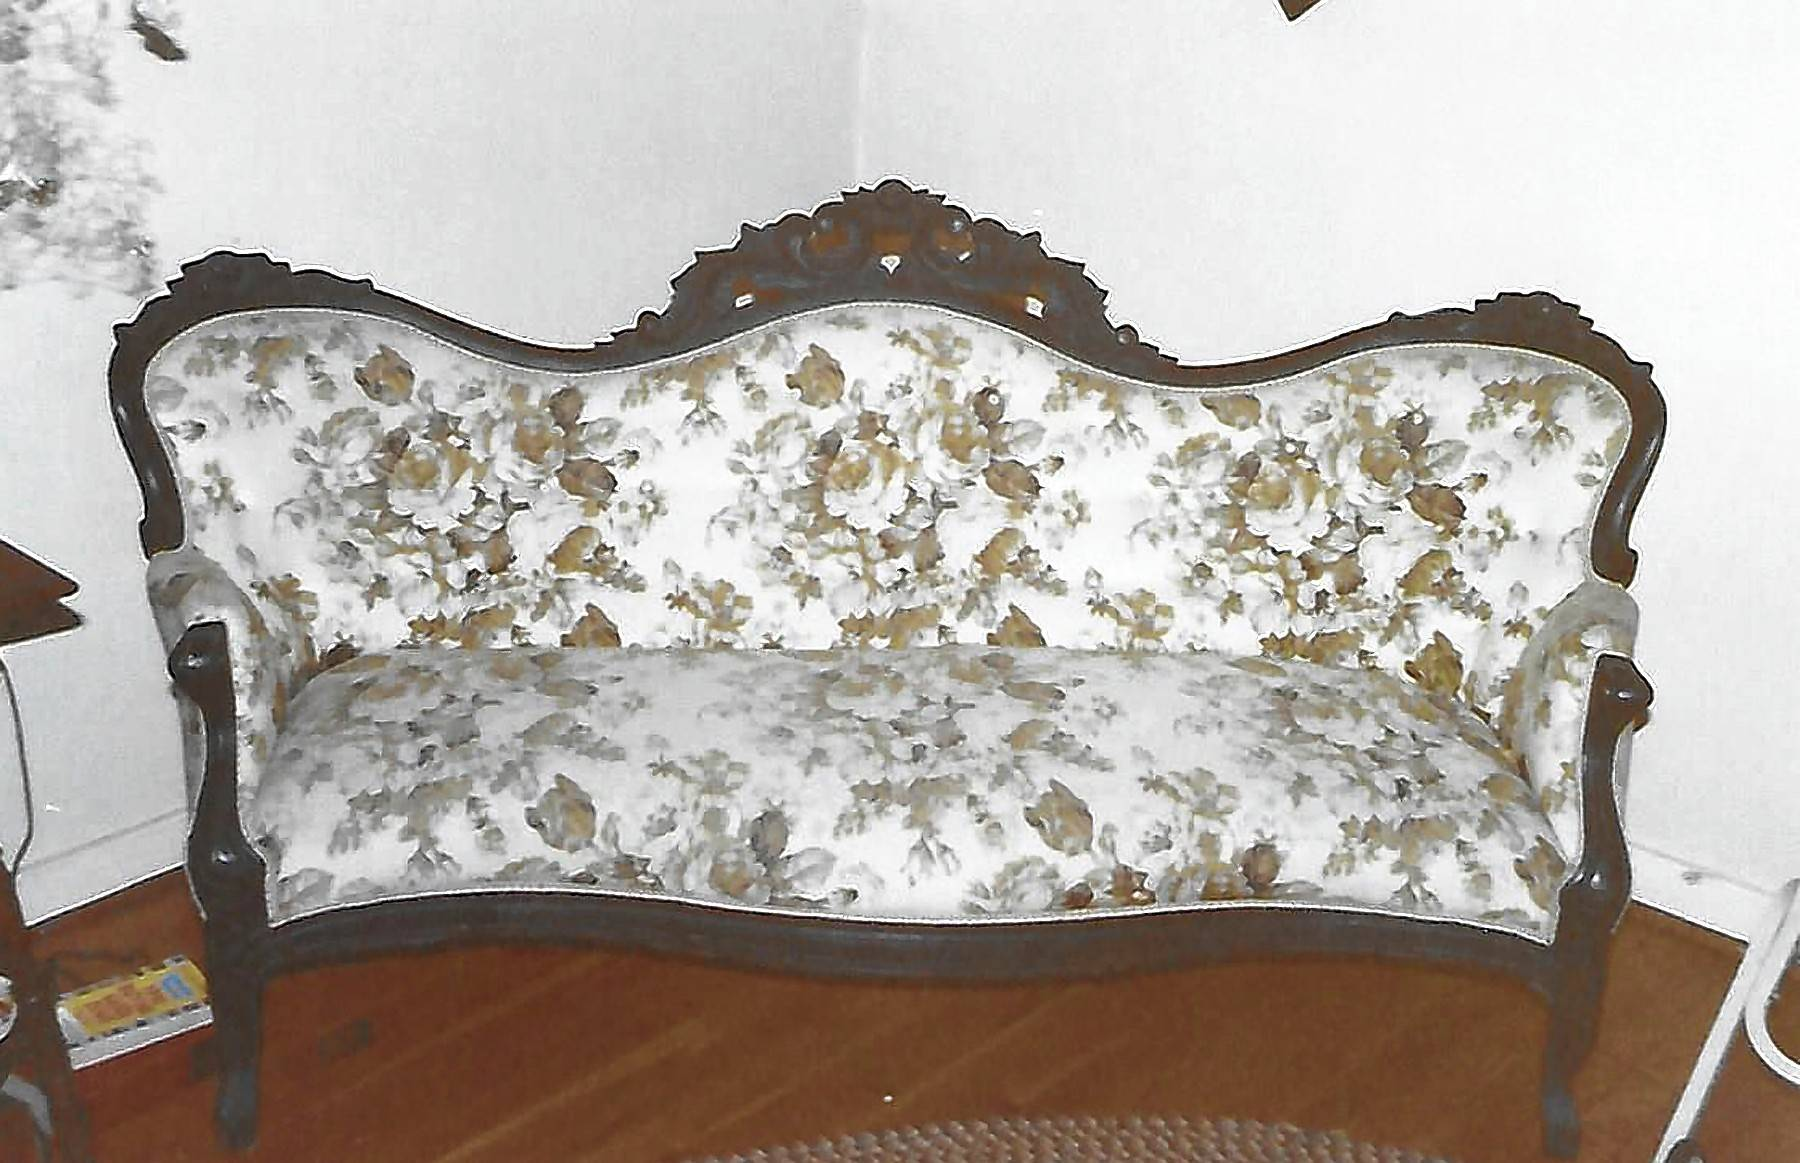 Rococo Revival is a Victorian sub-style of design.